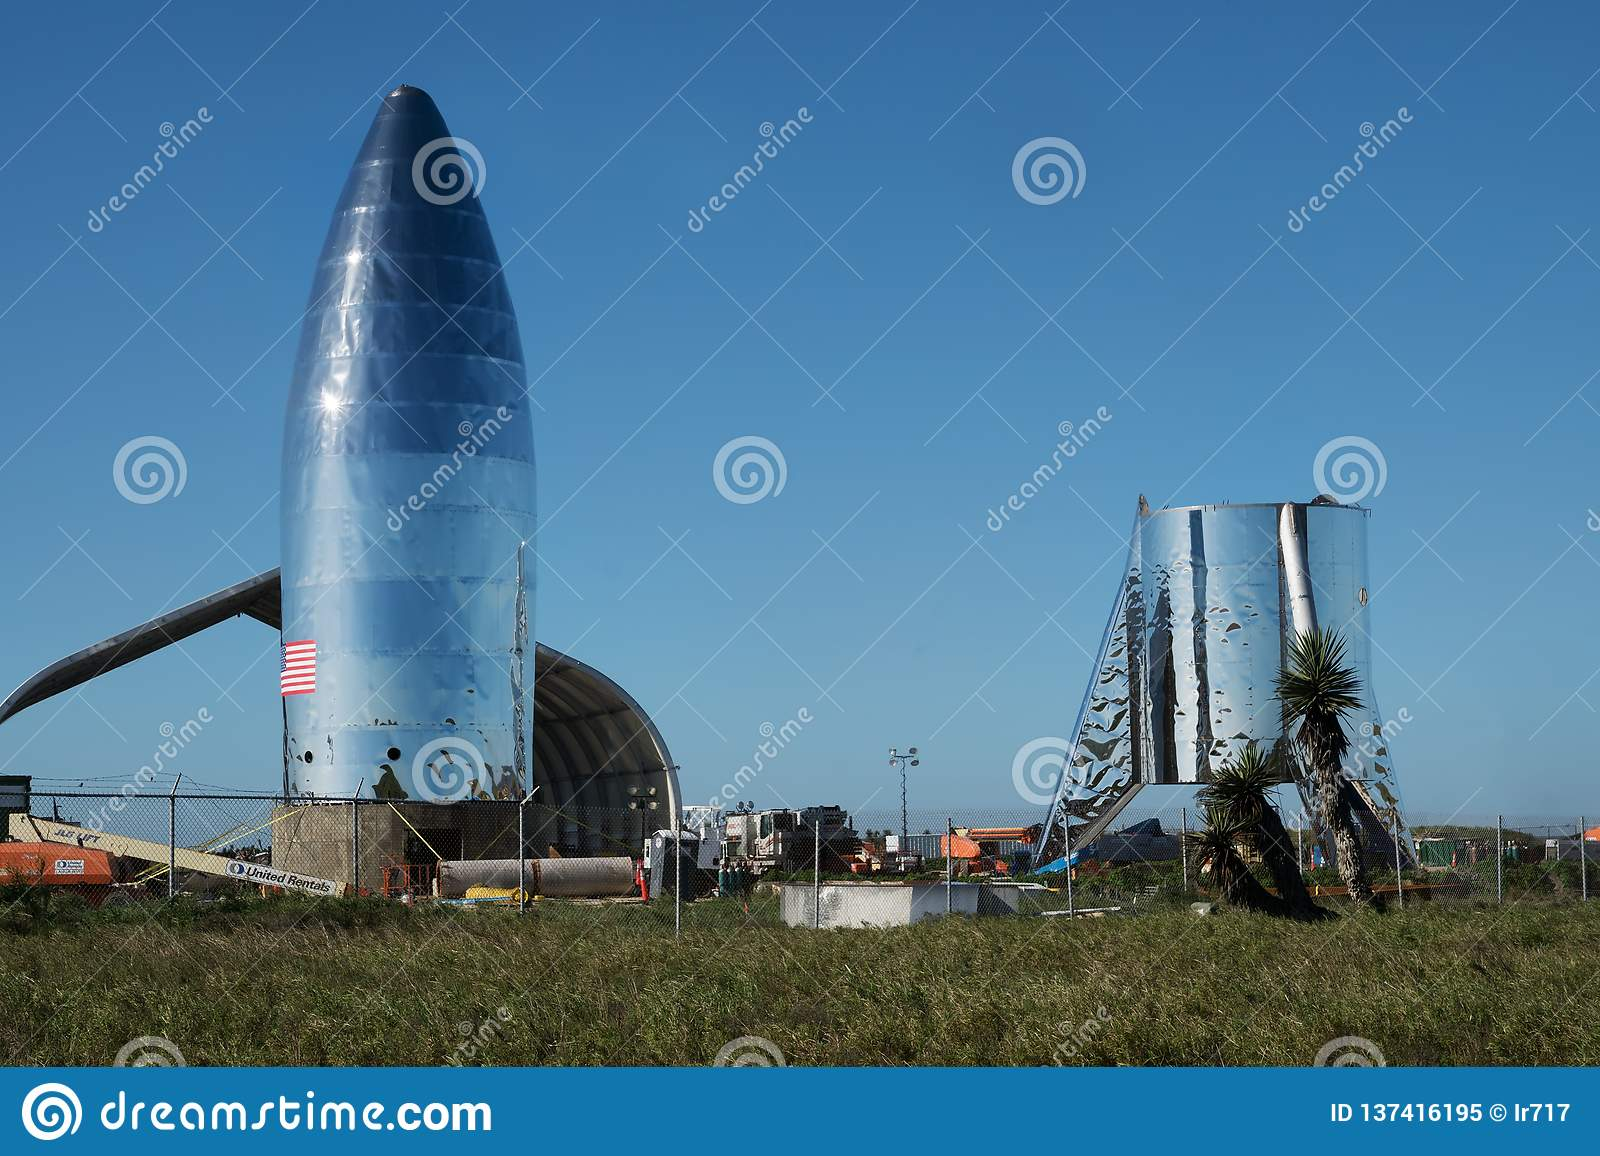 Une vue de prototype Starship de SpaceX Boca Chica Village, Cameron County, le Texas, Etats-Unis